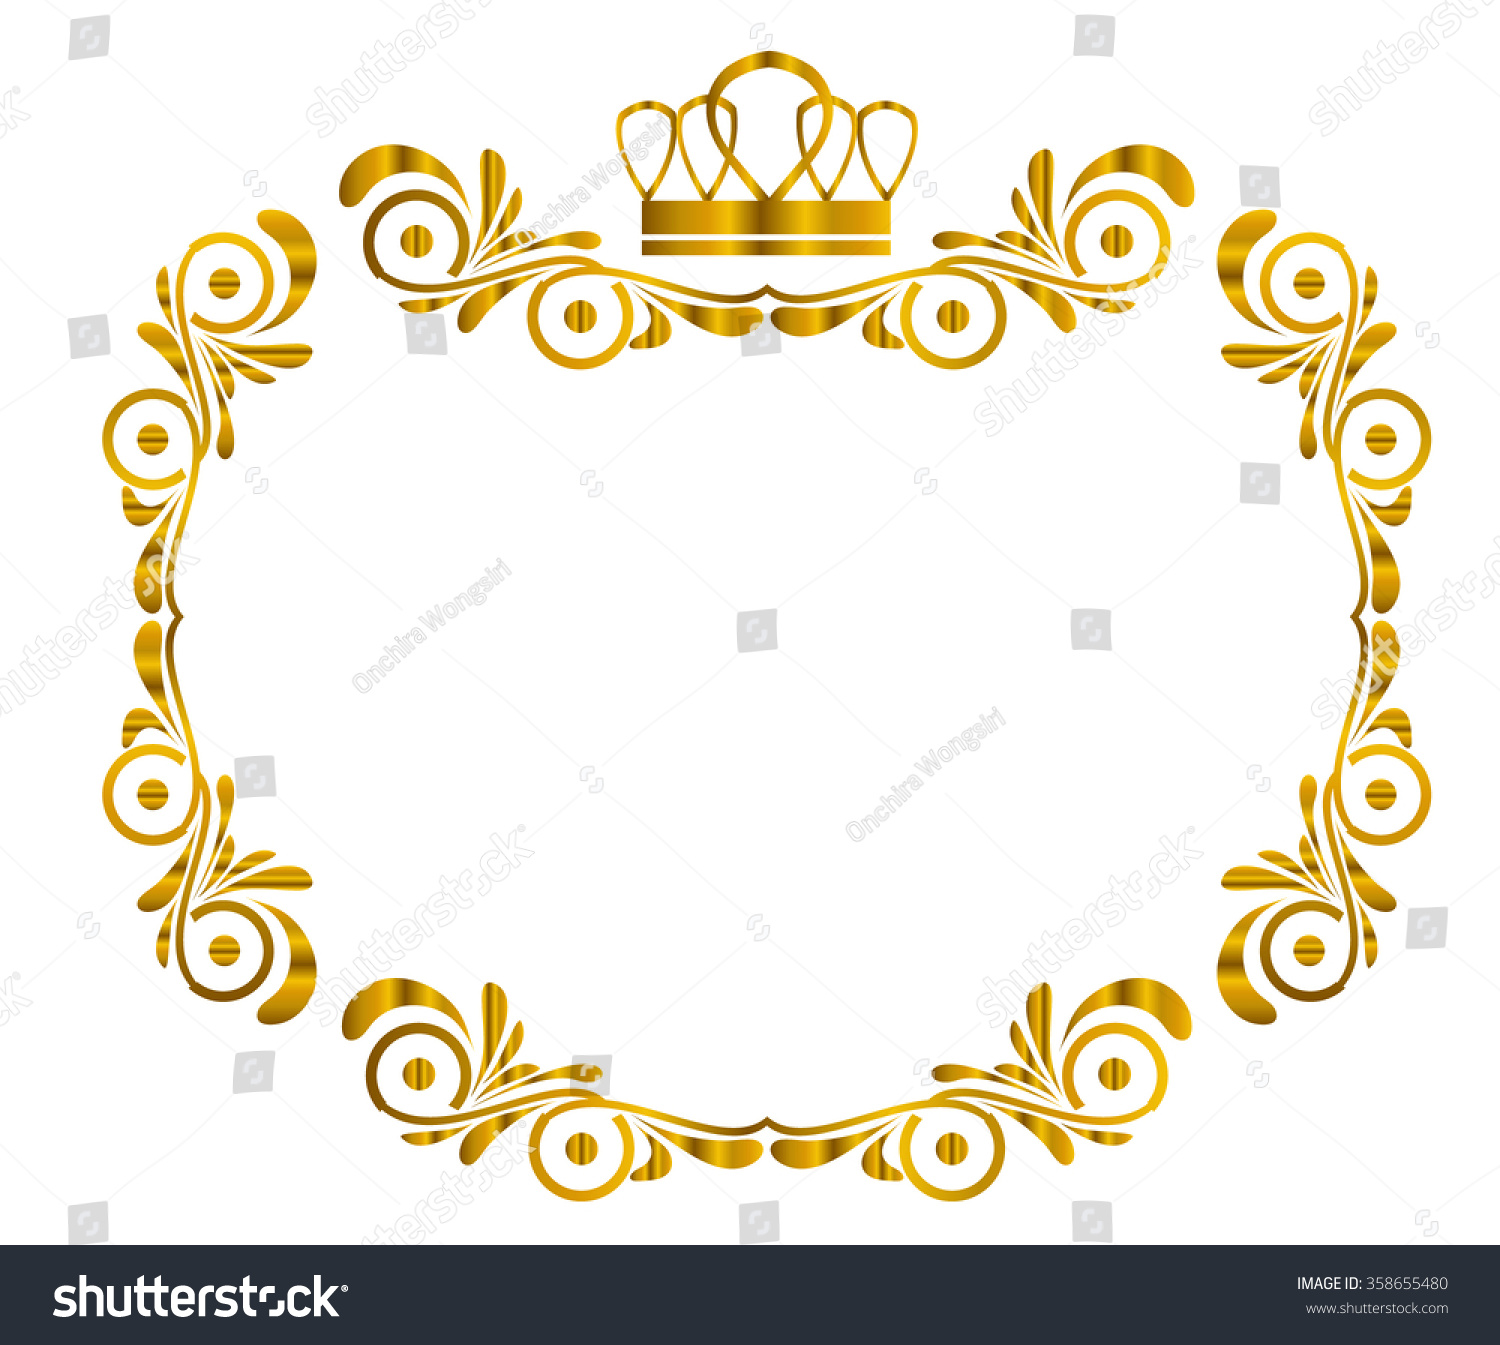 golden frame and border with crown on top isolated